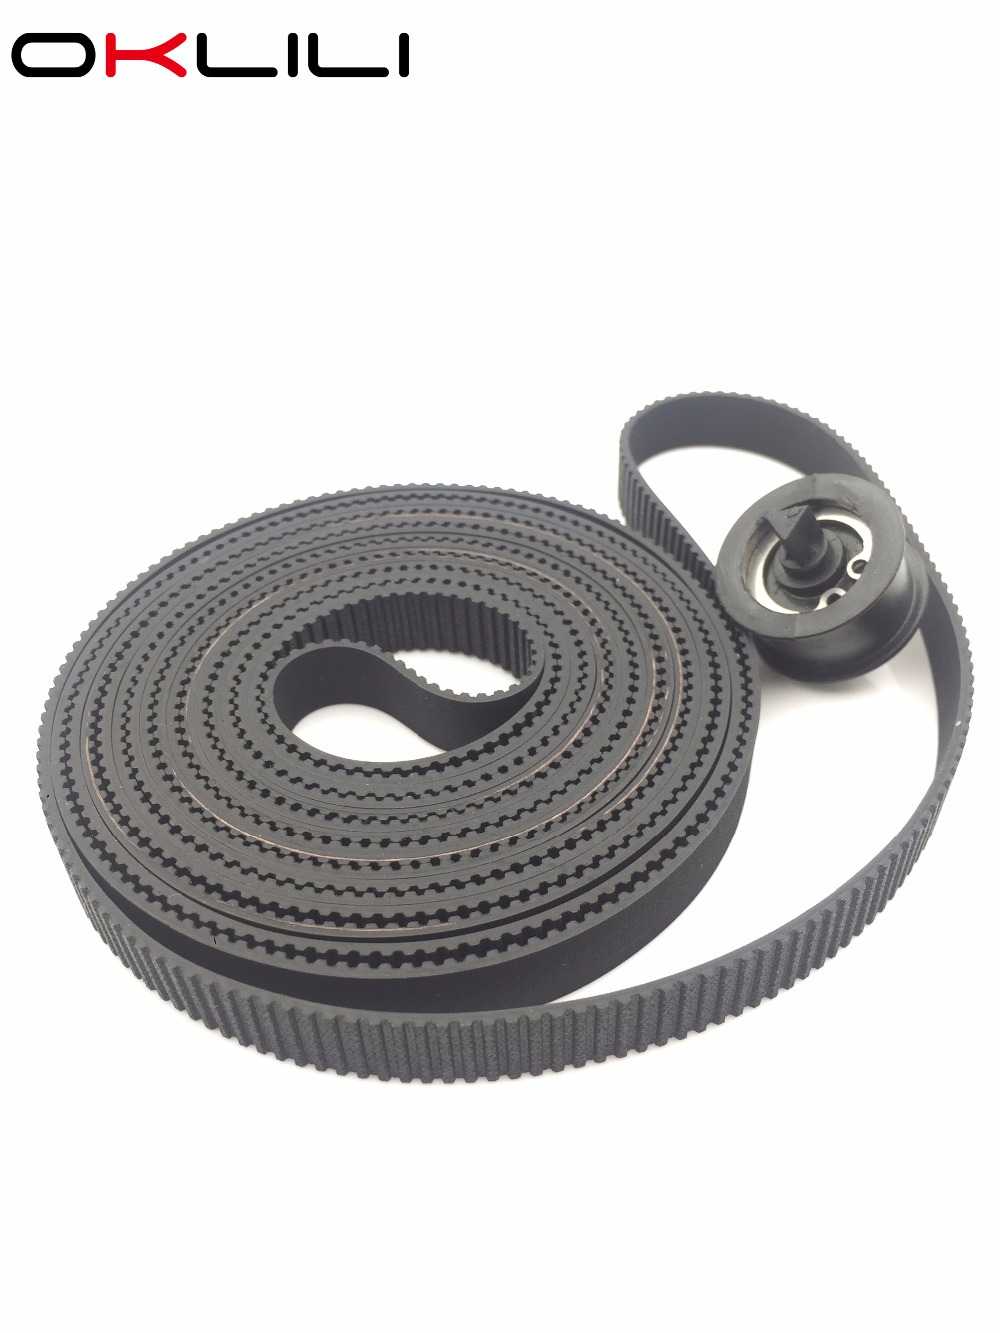 C7770-60014 Carriage Belt 42 B0 Size with Pulley for HP DesignJet 500 500PS 800 800PS 510 510PS 815 CC800PS Plus 820 815MFP